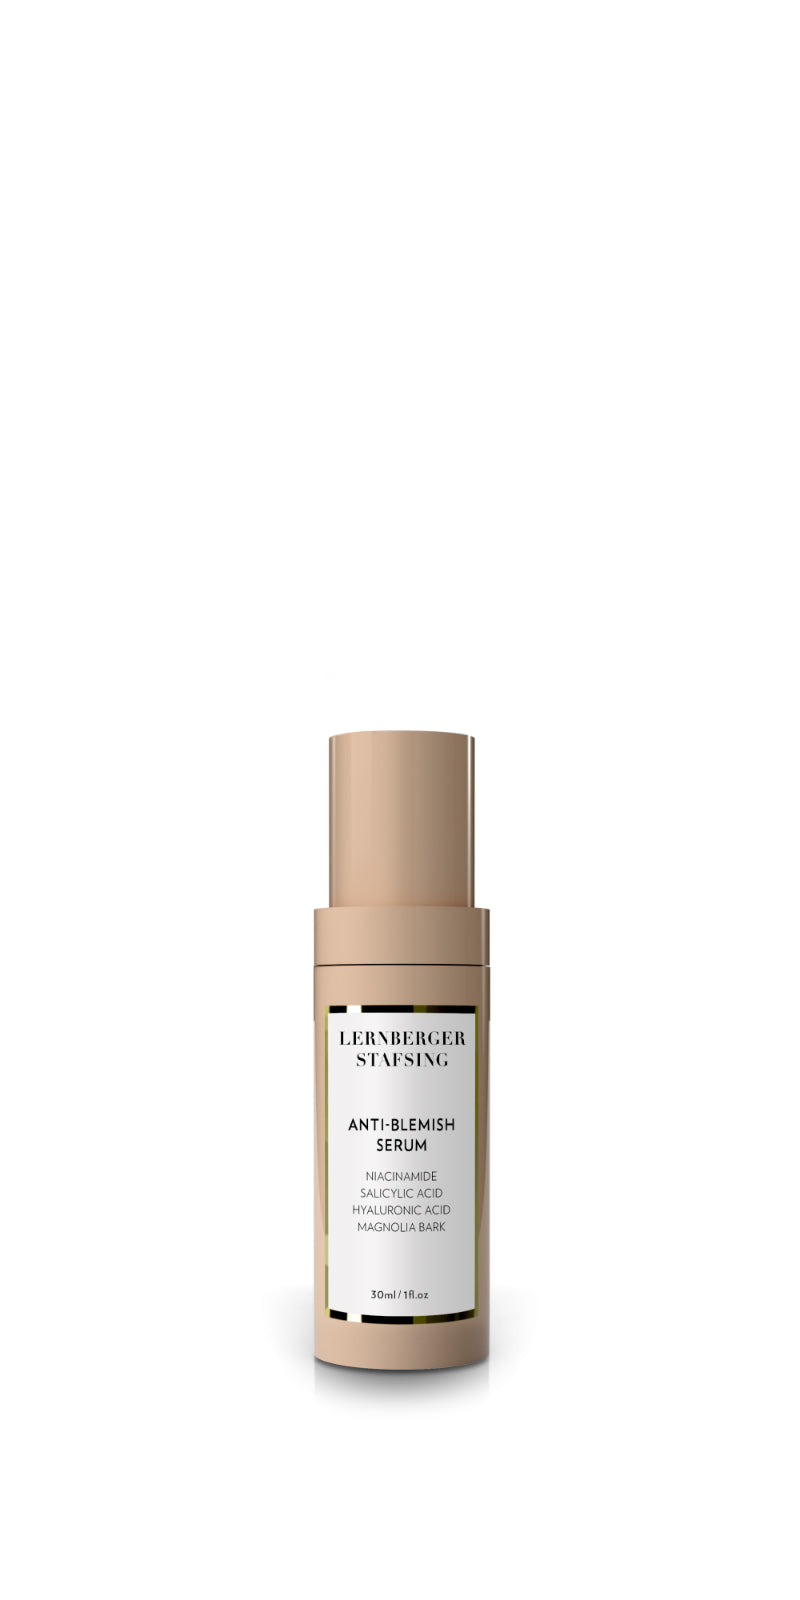 Lernberger Stafsing - Antiblemish serum